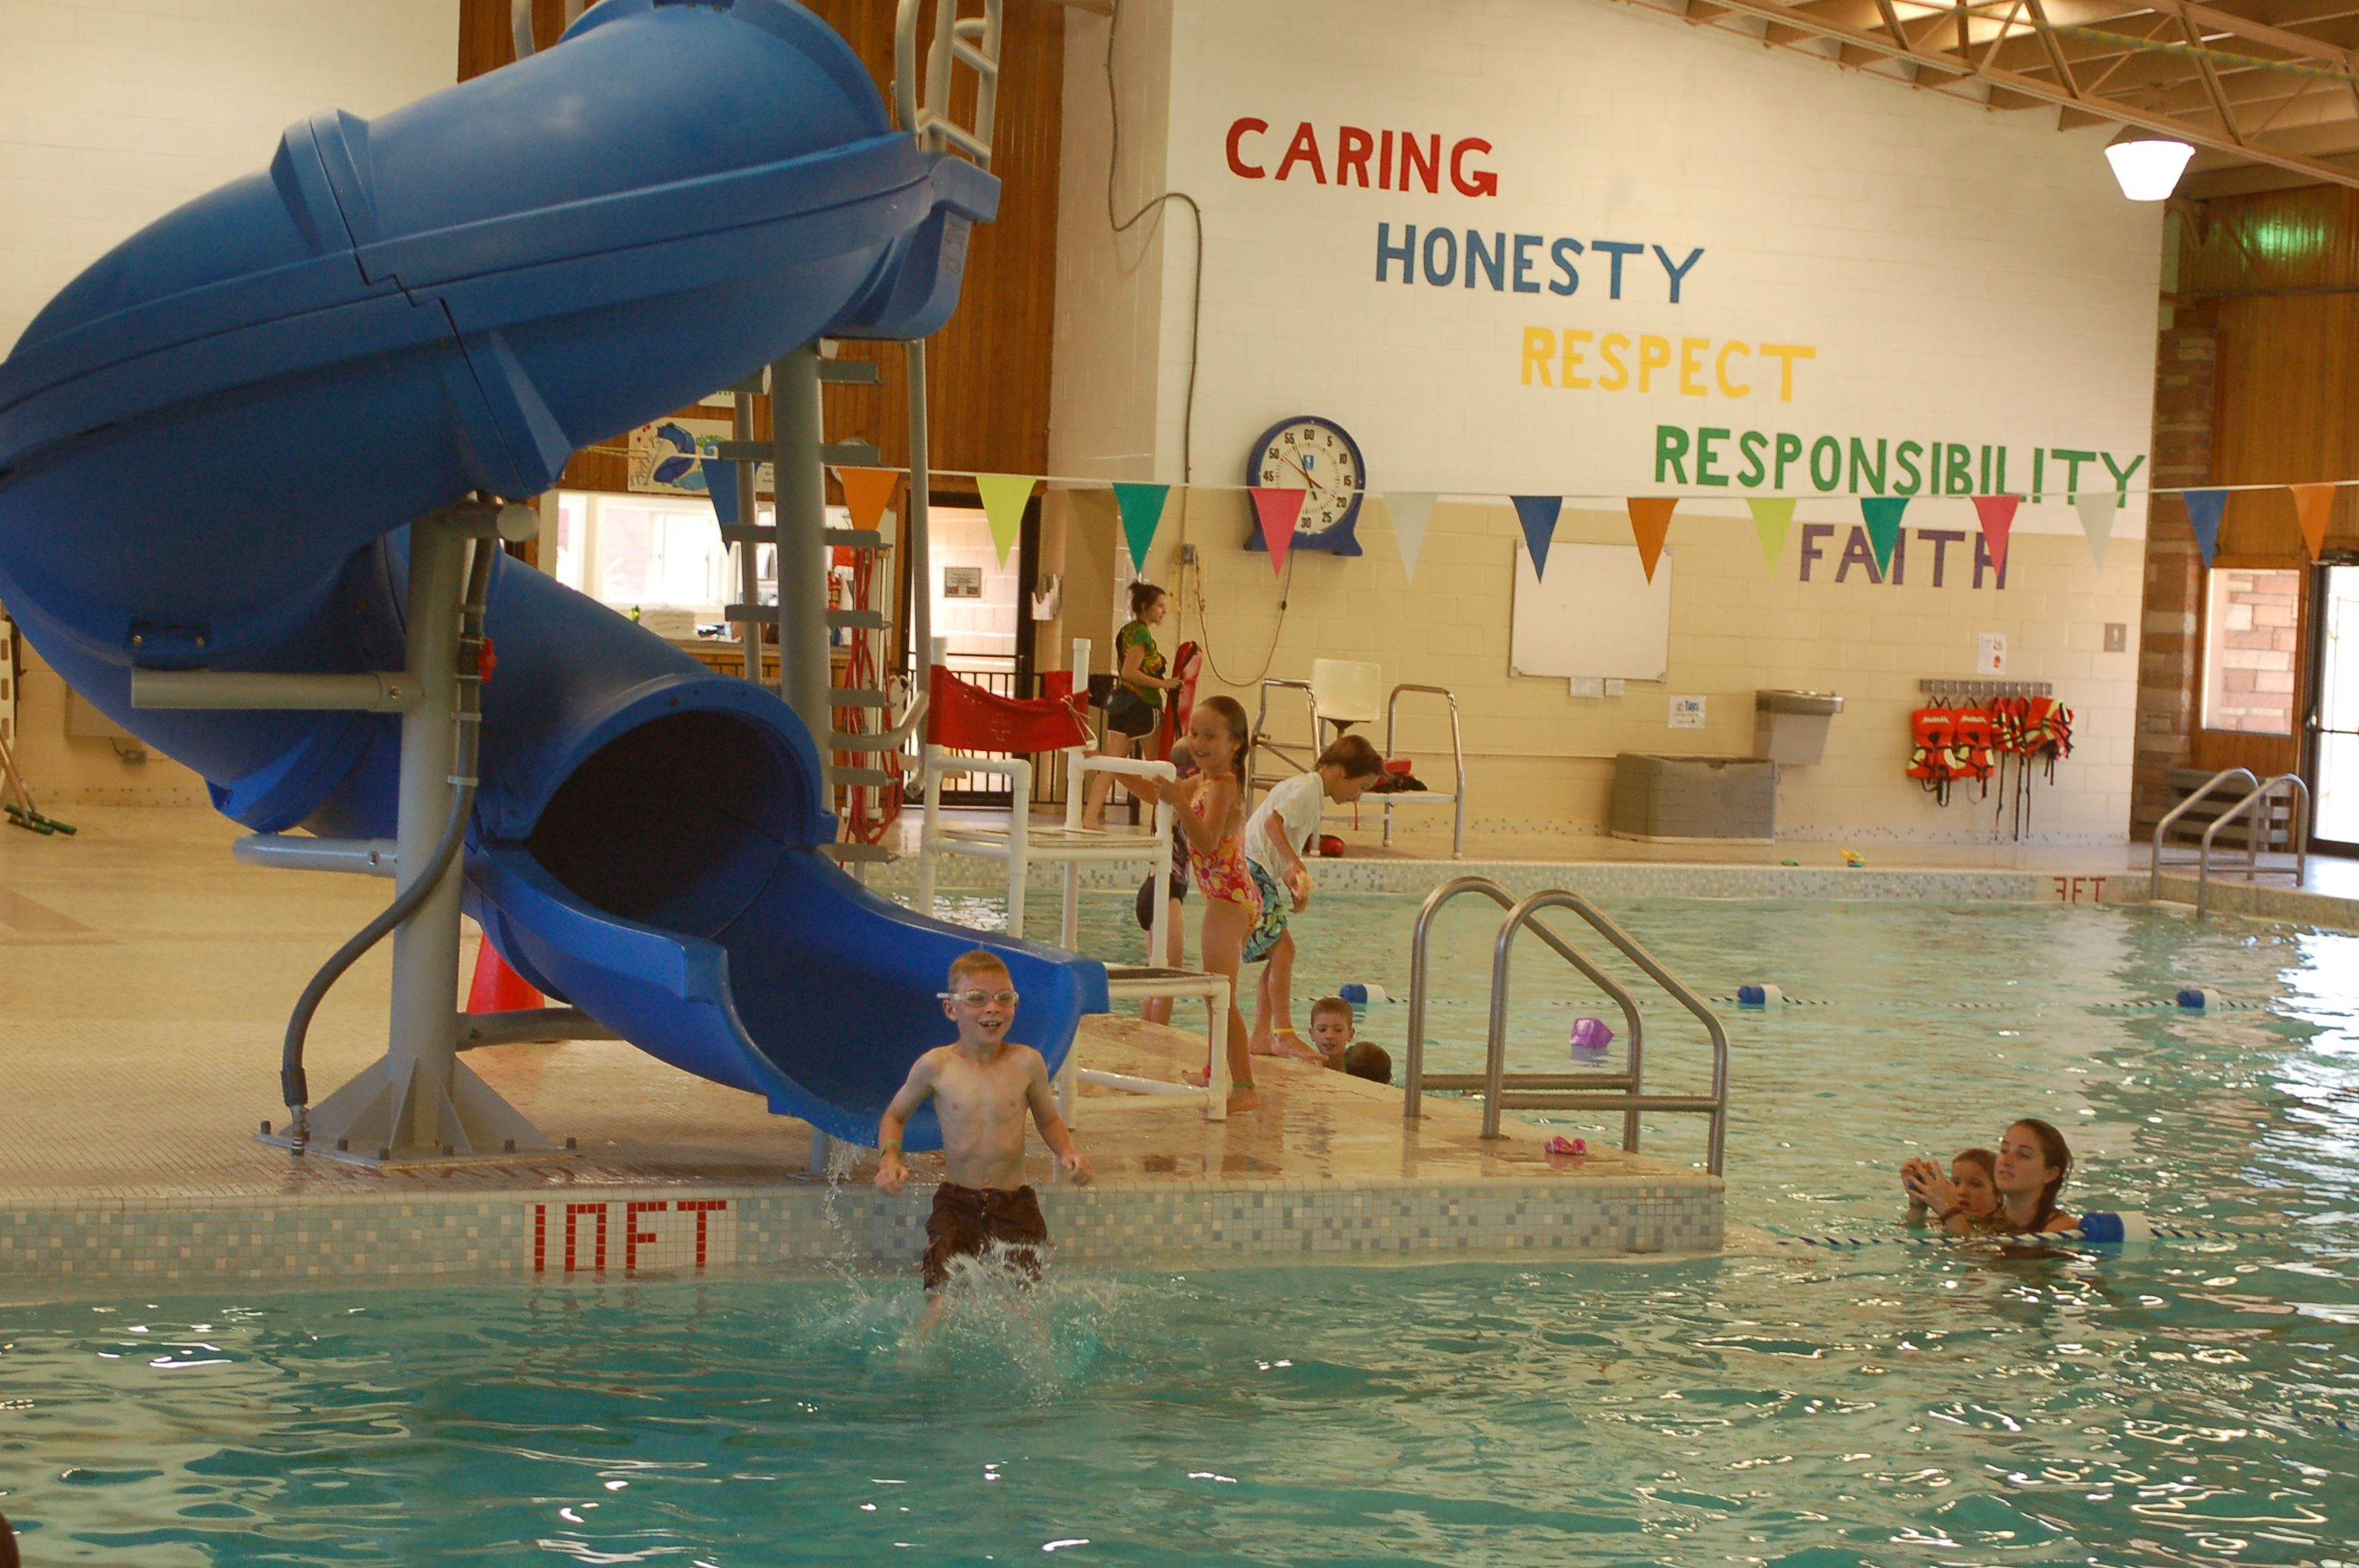 Water slide and swimming pool at YMCA of the Rockies, Estes Park ...